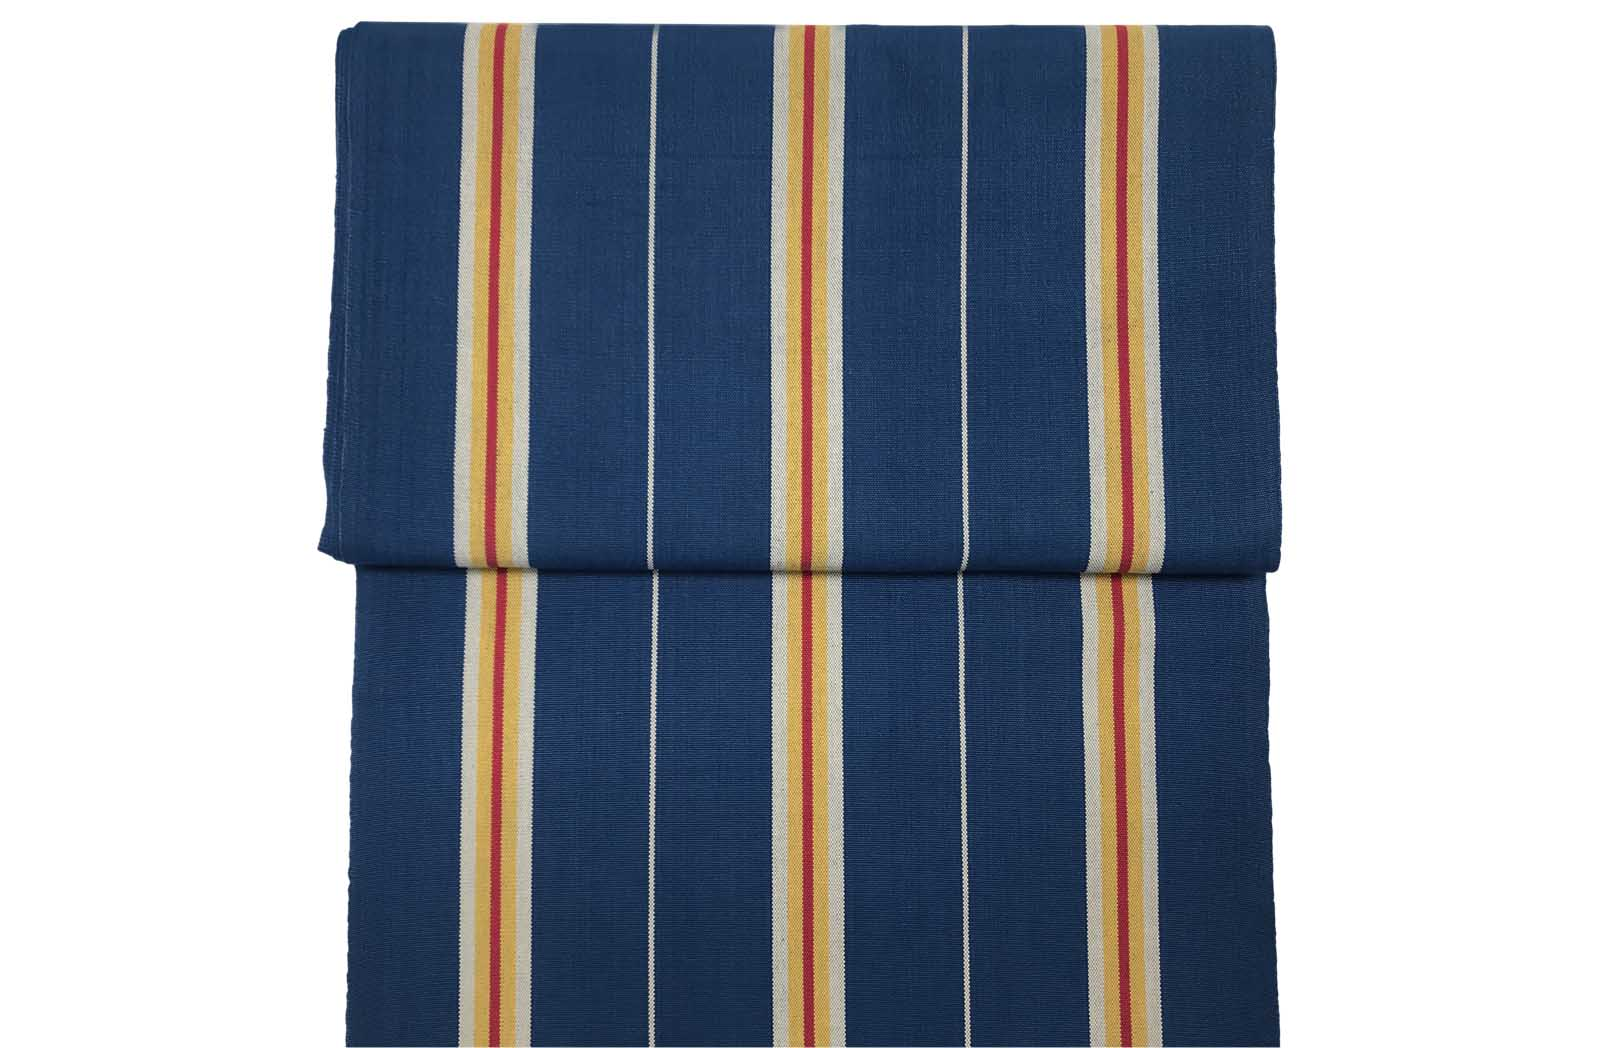 Navy Blue Stripe Deckchair Headrest Cushions | Tie on Pompom Headrest Pillow